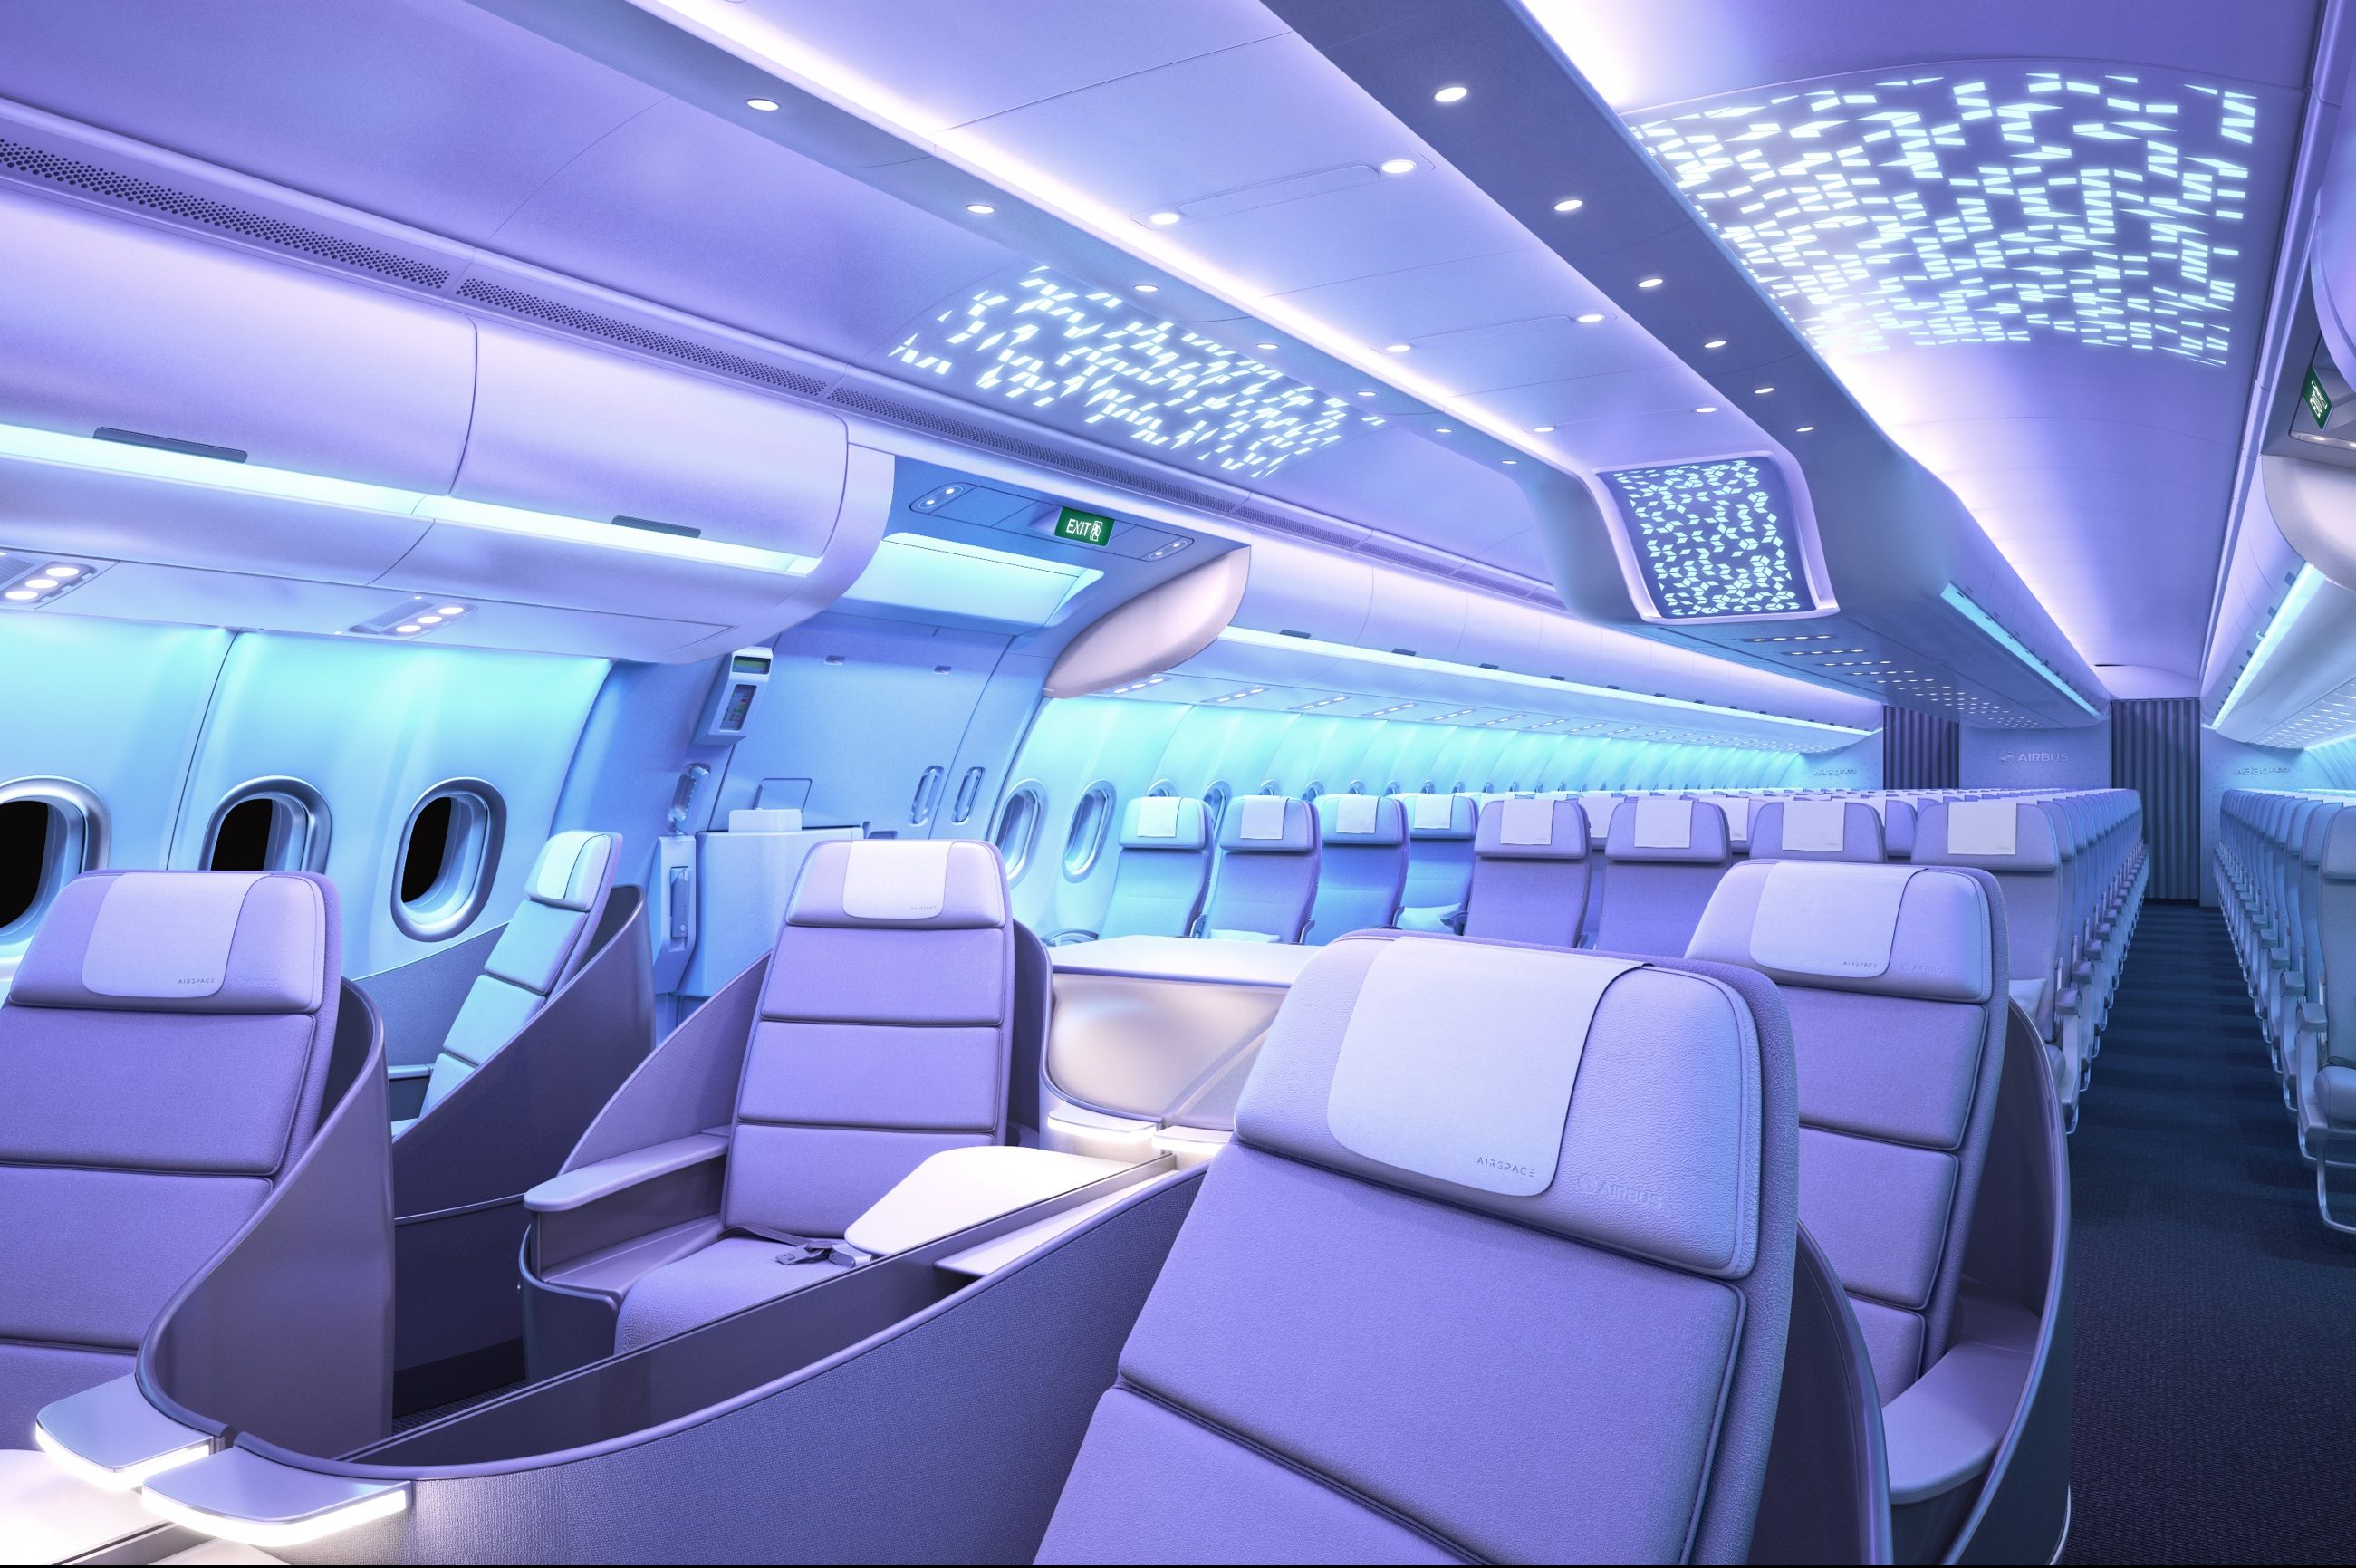 What Will the Airline Cabin of the Future Look Like? – Skift